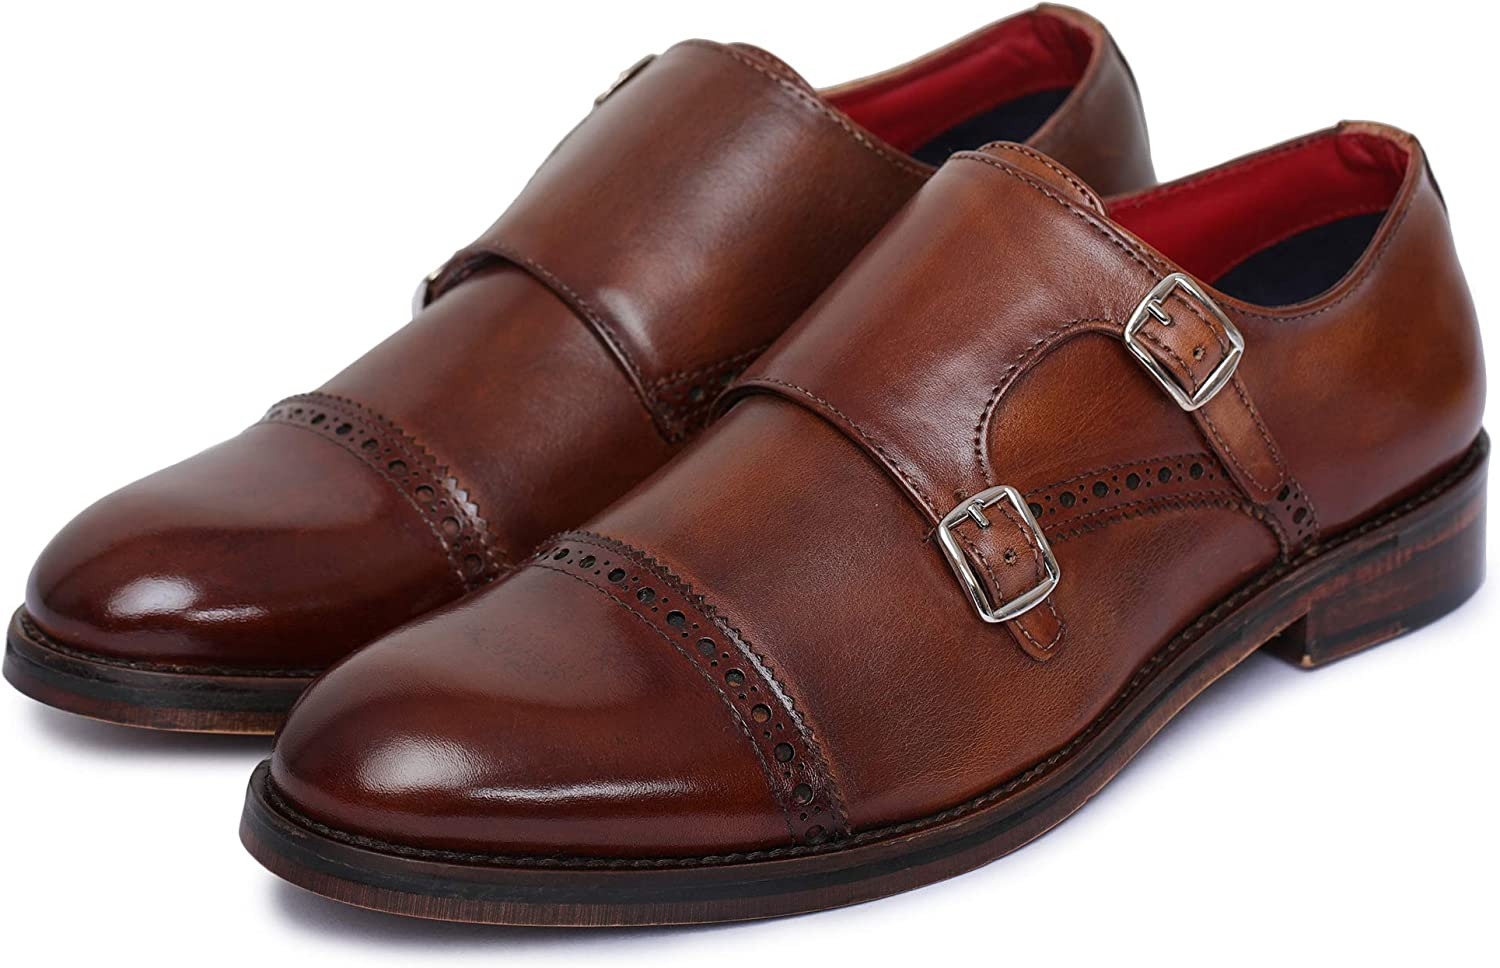 Lethato Handcrafted Men's Captoe Double Monk Strap Genuine Leather Modern Classic Dress shoes